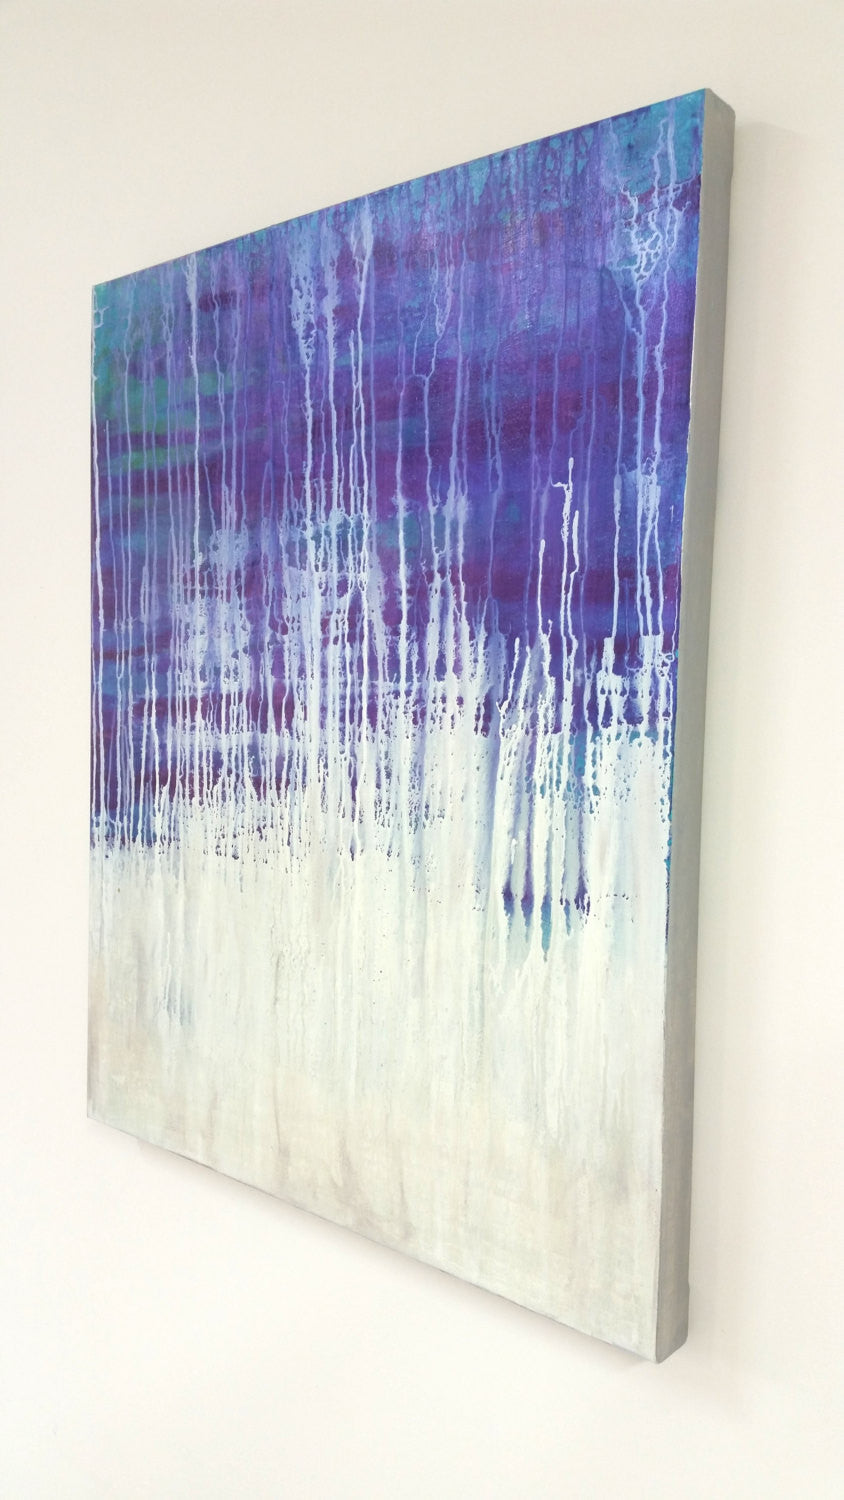 Enchanted - Original Iridescent Acrylic Painting on Canvas - Abstract Home Decor - Brazen Design Studio